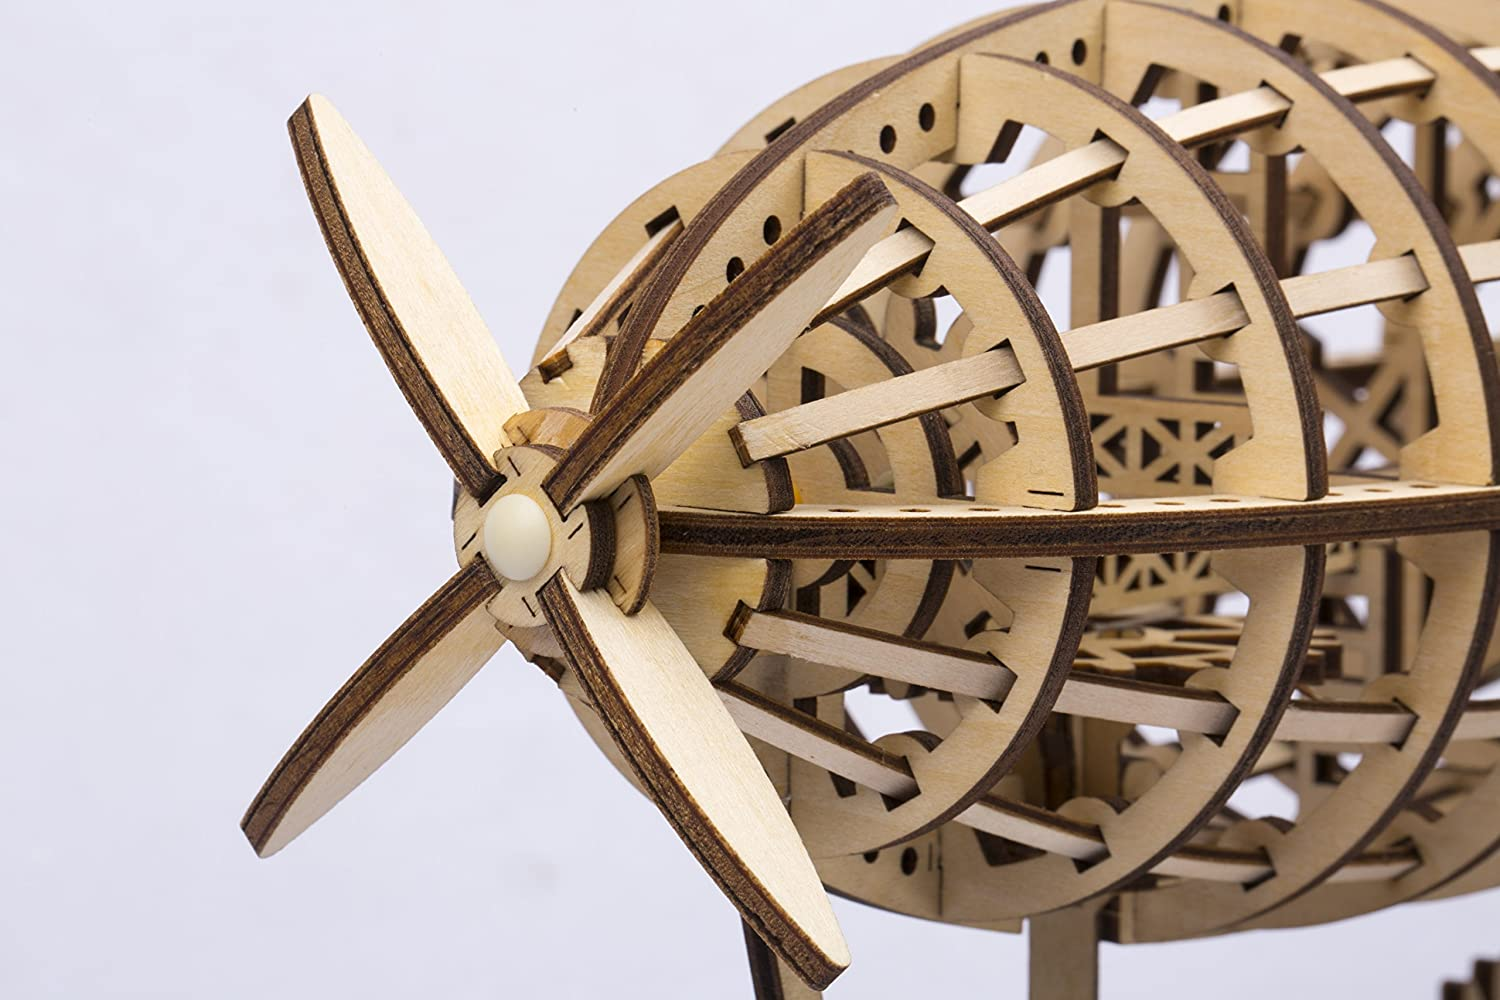 Premium Quality Wood Airship Non-Toxic and Safe. DIY 3D Wooden Puzzle Laser-Cut Mechanical Wind-Up Puzzle Model Kit